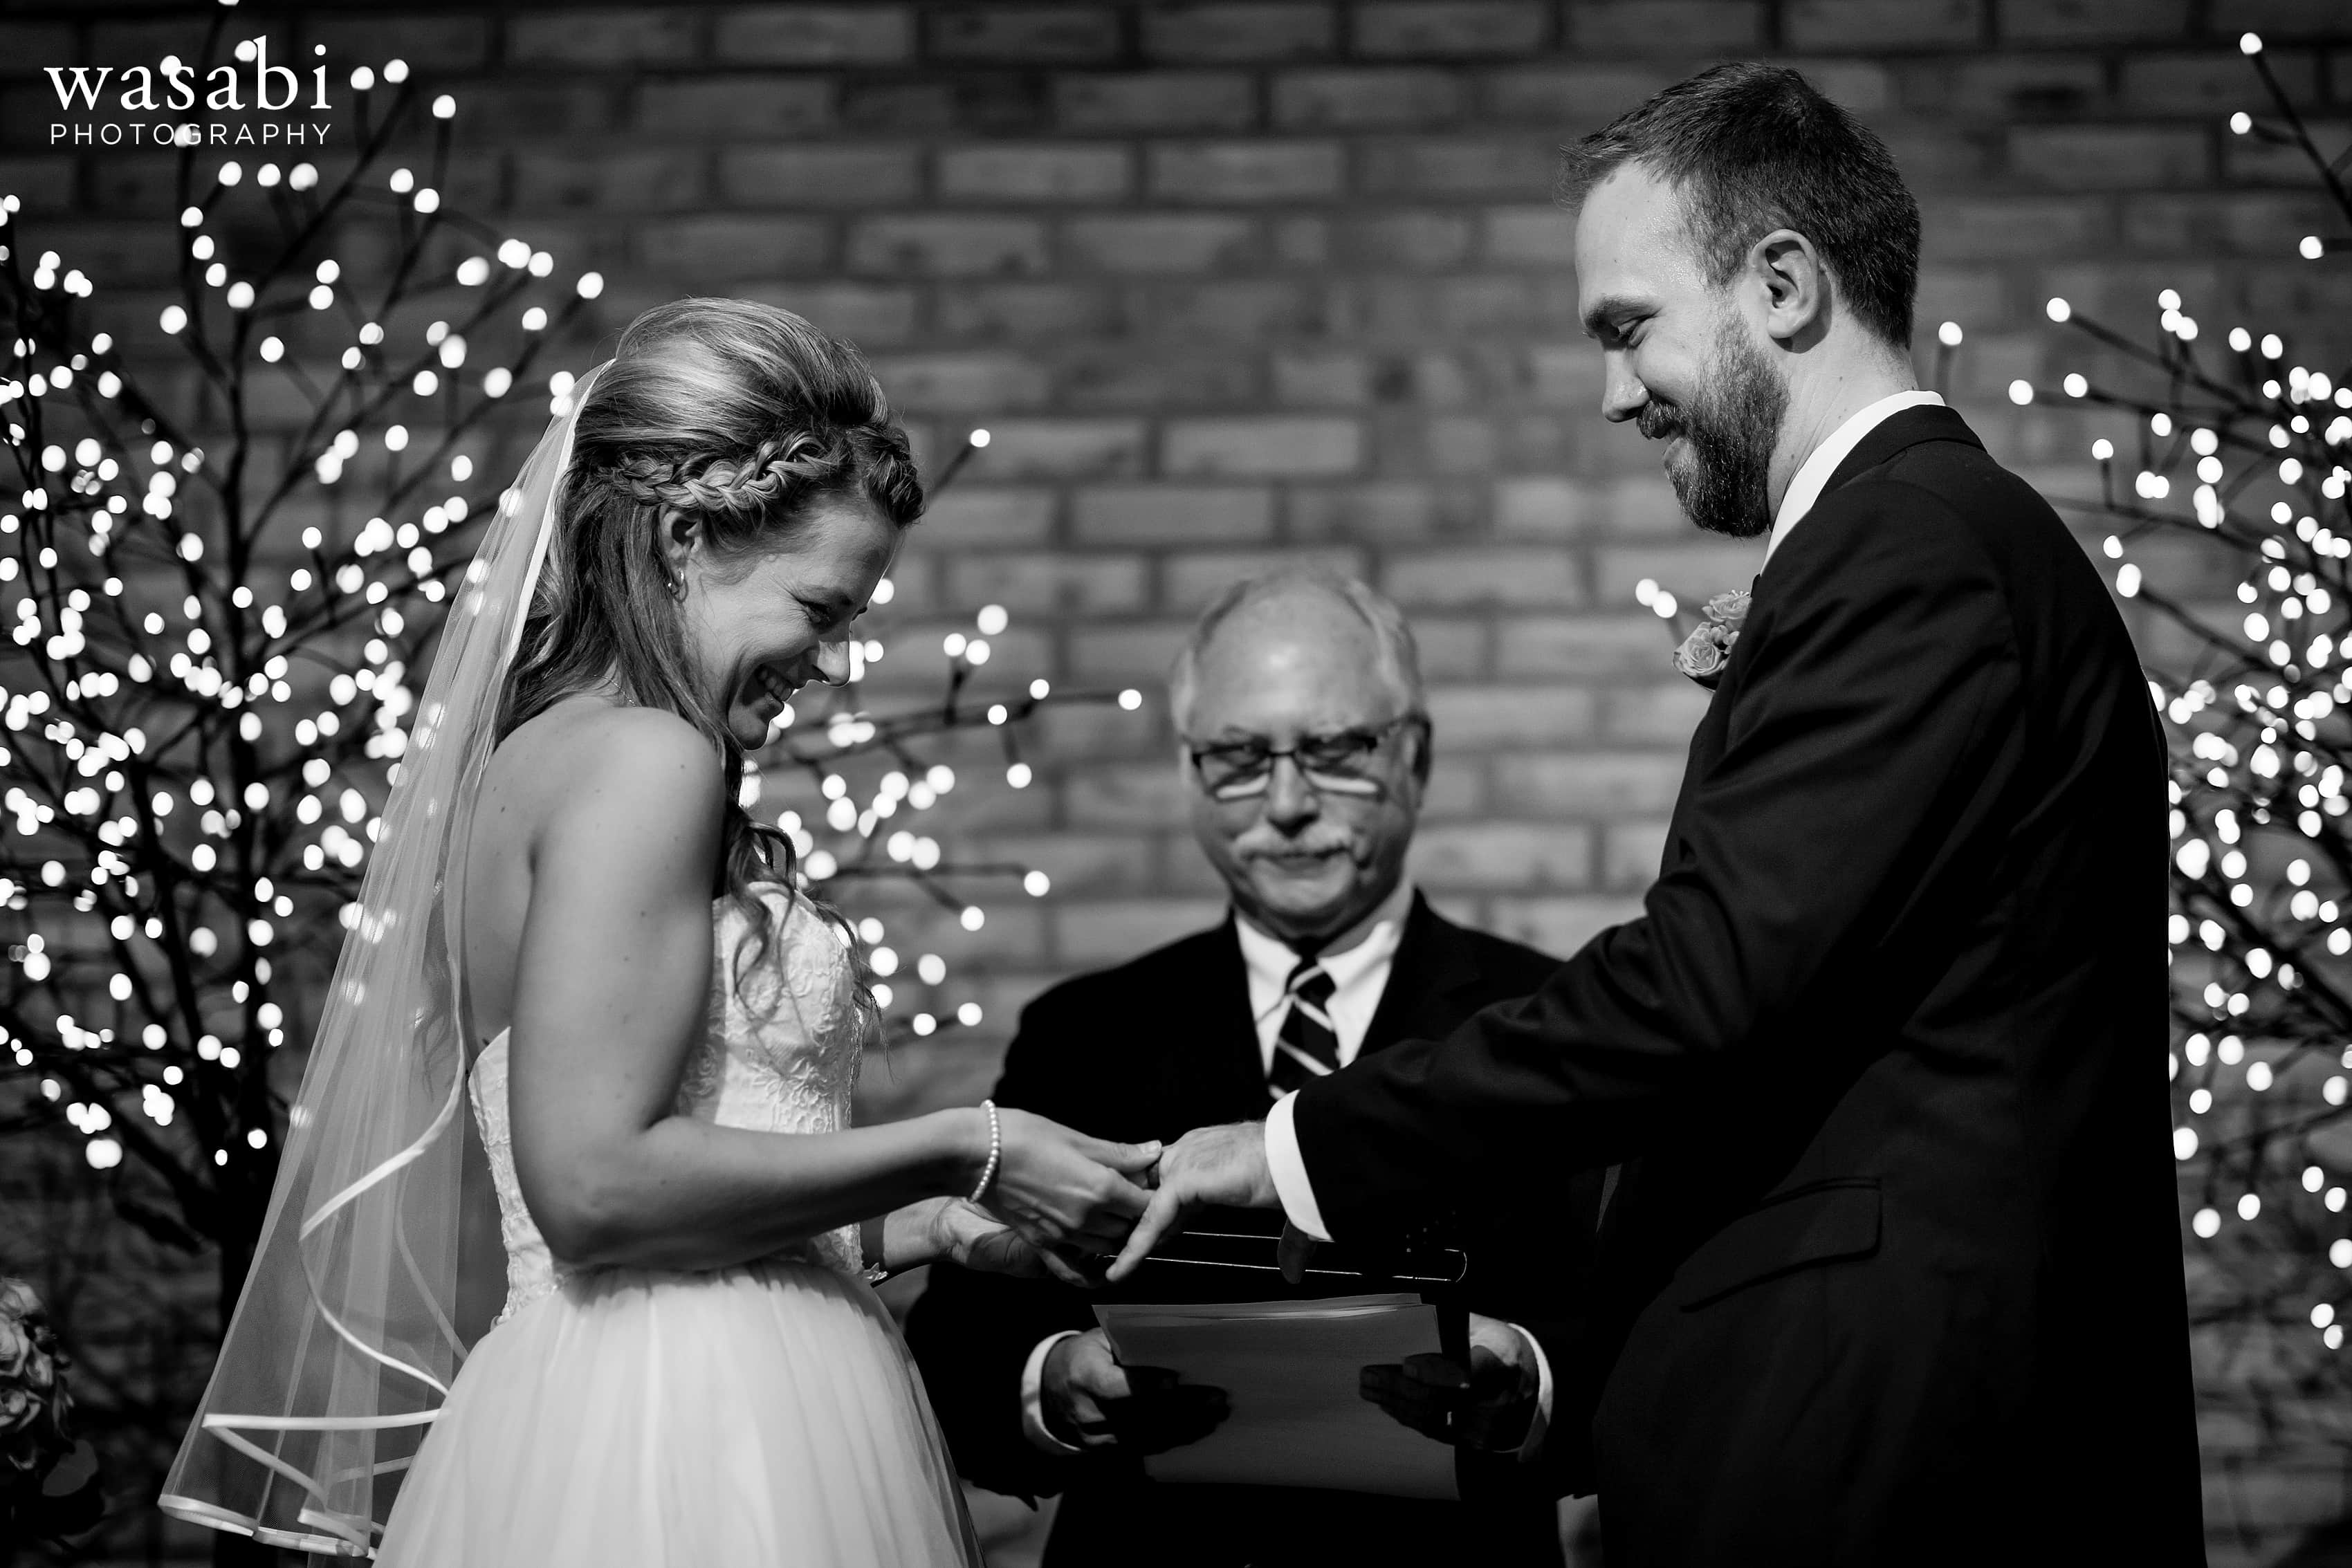 bride and groom exchange rings during their wedding at Eberhard Center in downtown Grand Rapids